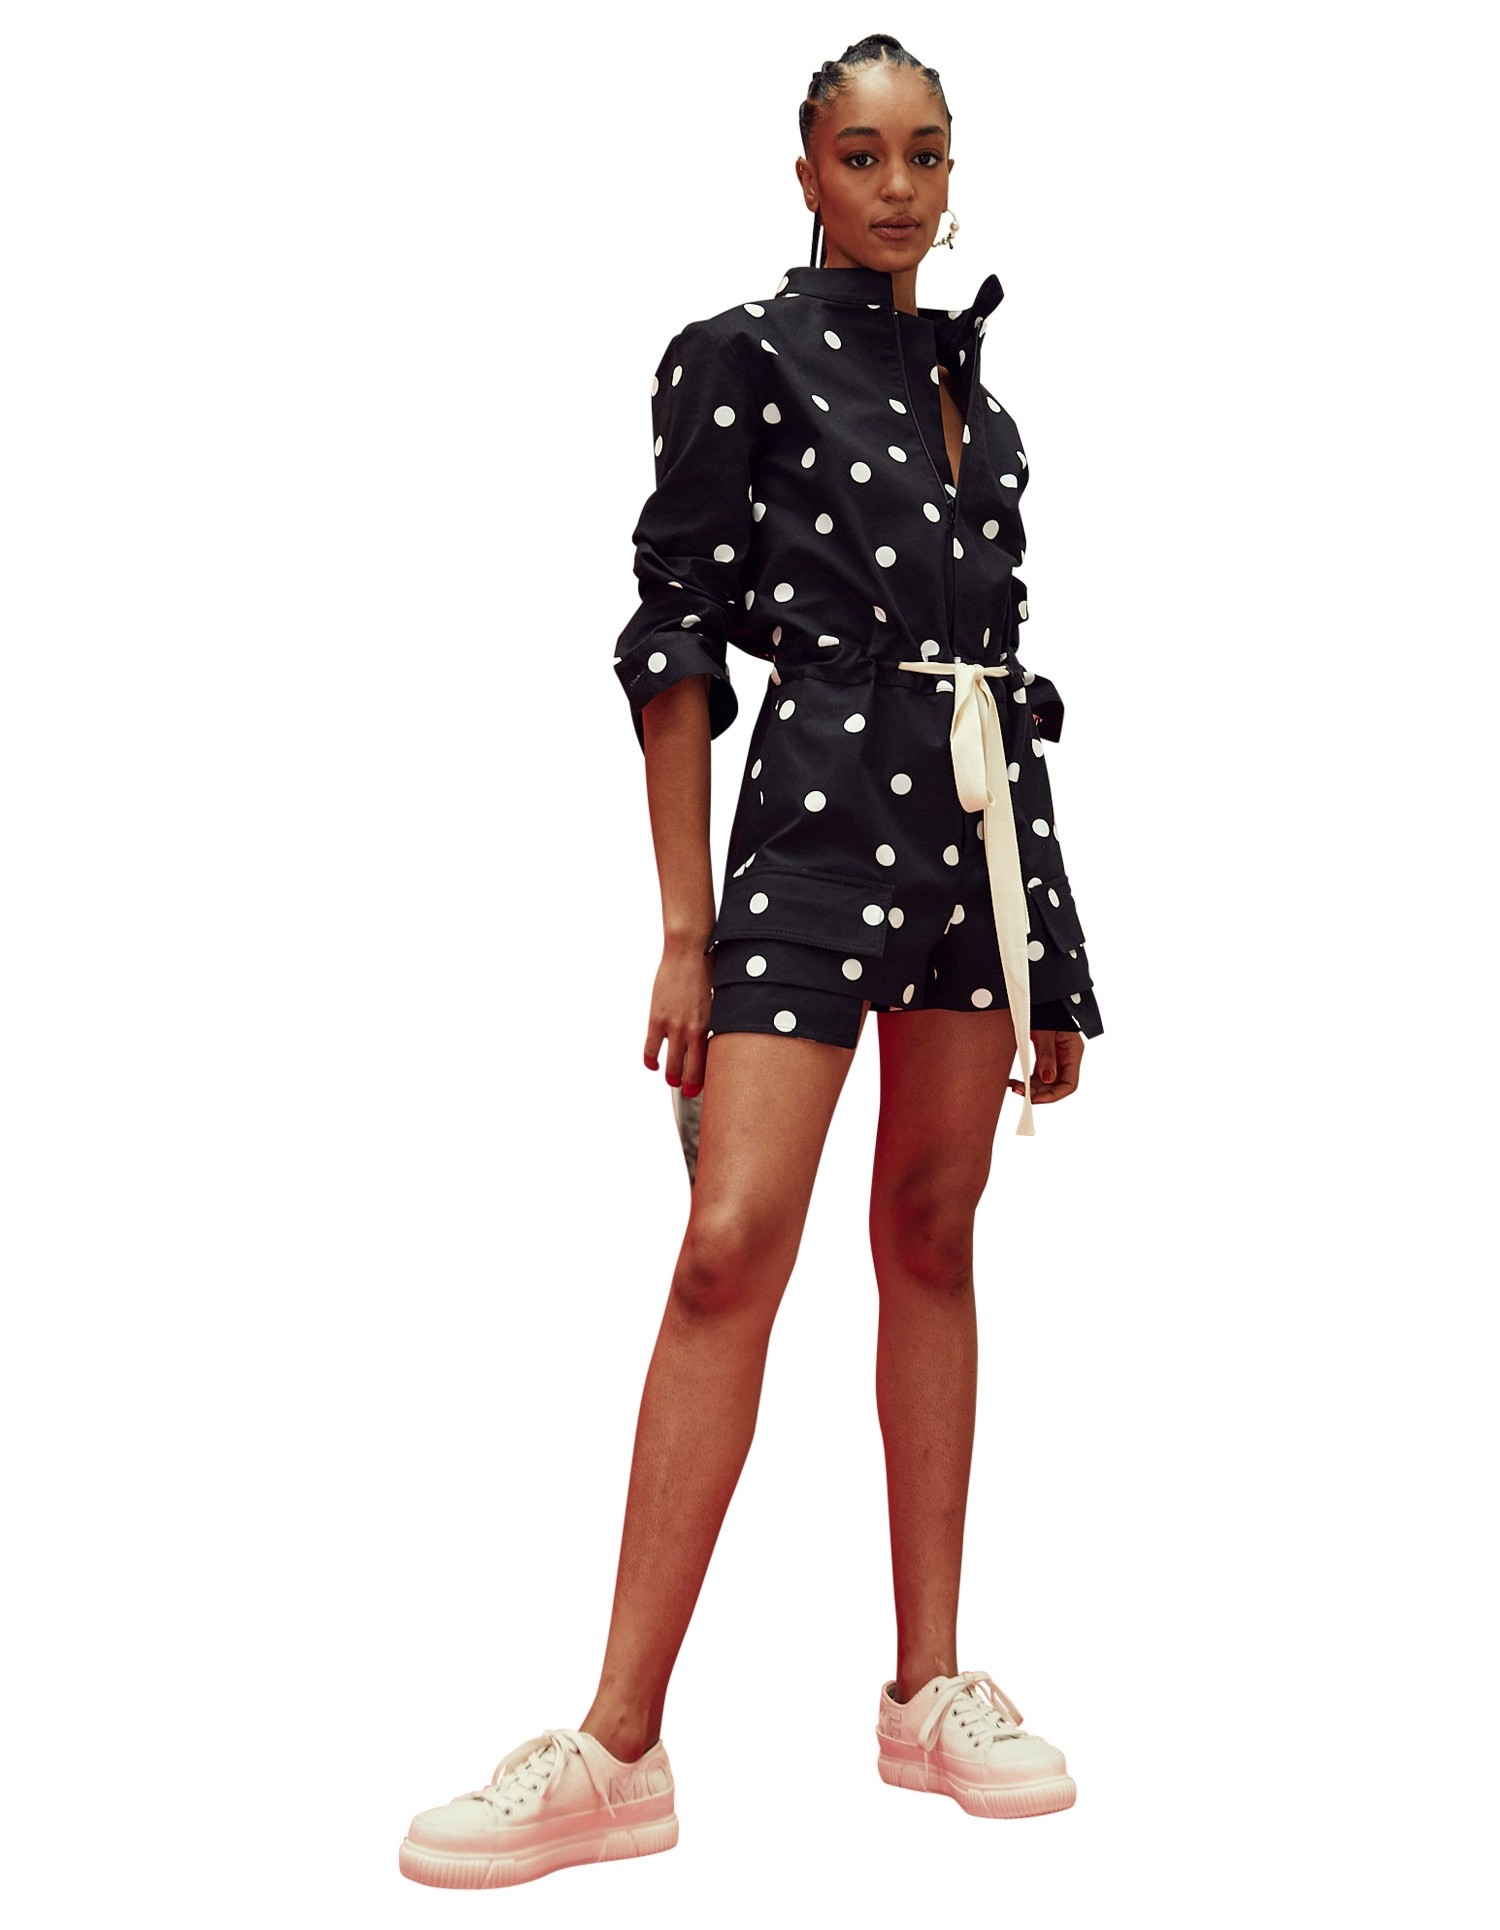 MONSE Scrunch Sleeve Polka Dot Romper on Model No Background Front